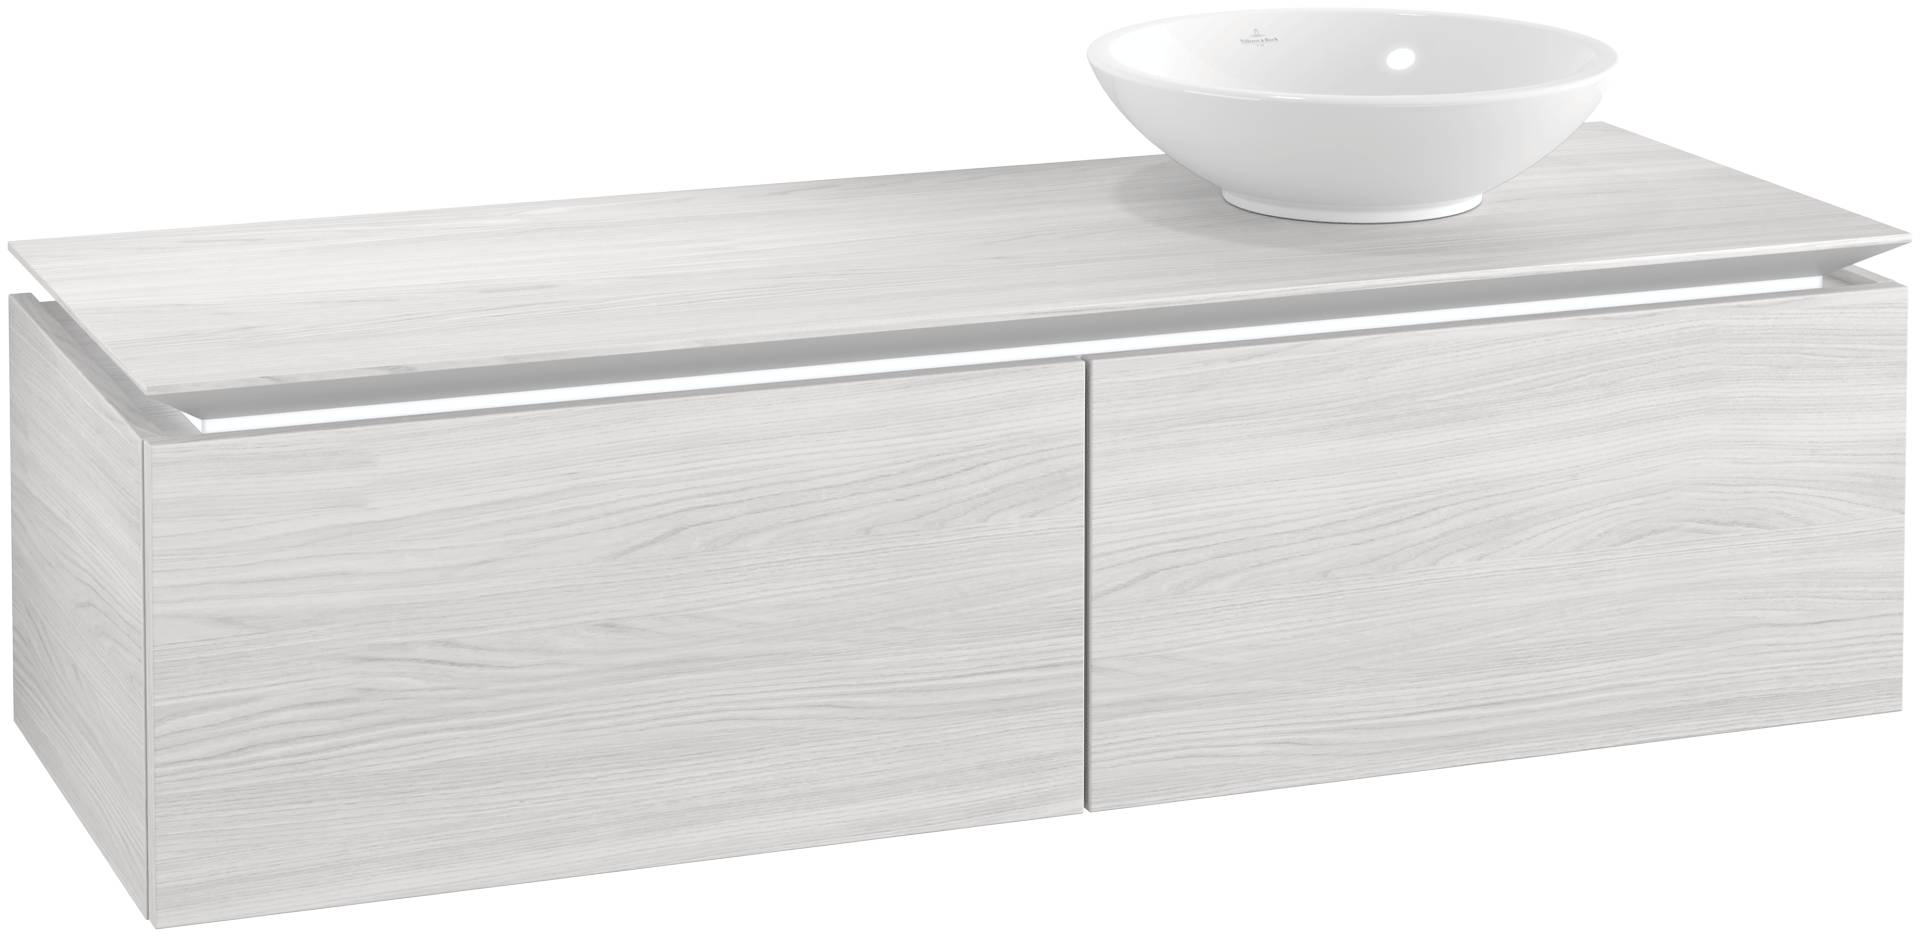 Villeroy & Boch Villeroy & Boch Legato - Meuble sous lavabo with 2 drawers & 1 cut-out right 1400 x 380 x 500mm bois blanc